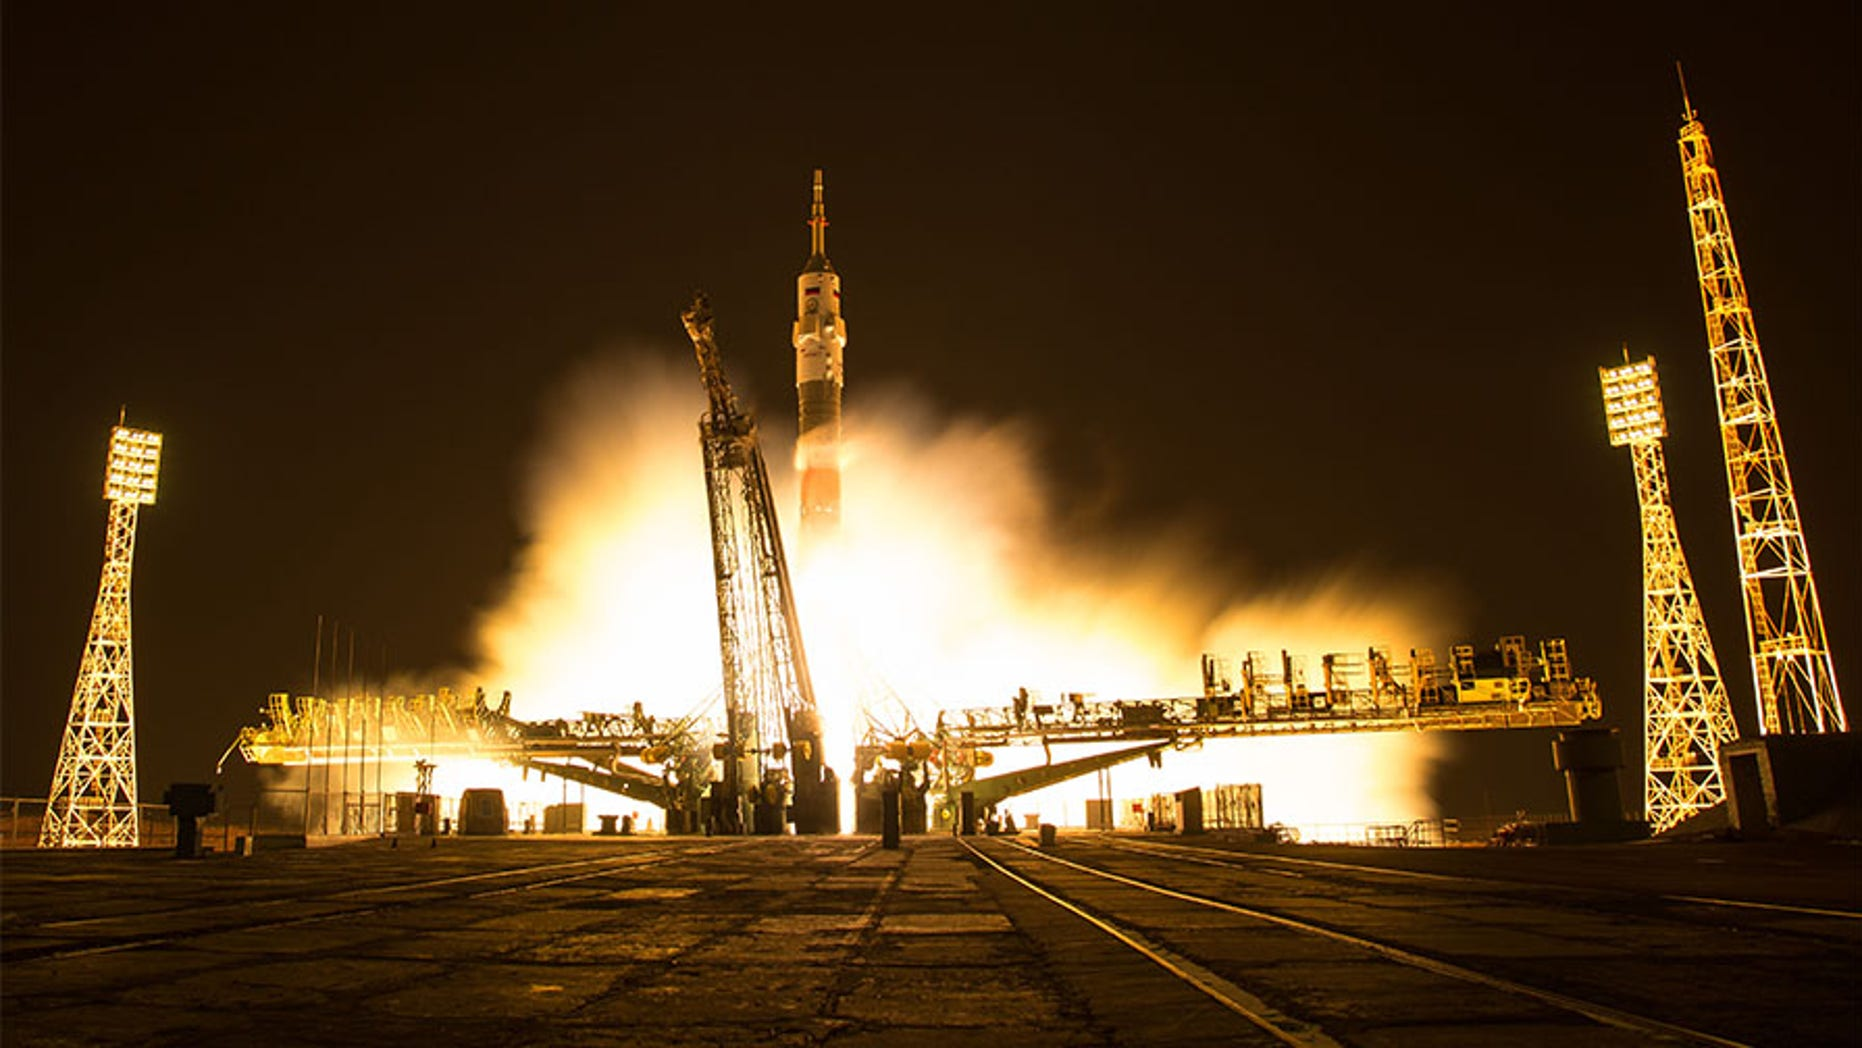 File photo - In this one-second exposure photograph, the Soyuz MS-03 spacecraft is seen launching from the Baikonur Cosmodrome with Expedition 50 crewmembers NASA astronaut Peggy Whitson, Russian cosmonaut Oleg Novitskiy of Roscosmos, and ESA astronaut Thomas Pesquet from the Baikonur Cosmodrome in Kazakhstan, Friday, Nov. 18, 2016.